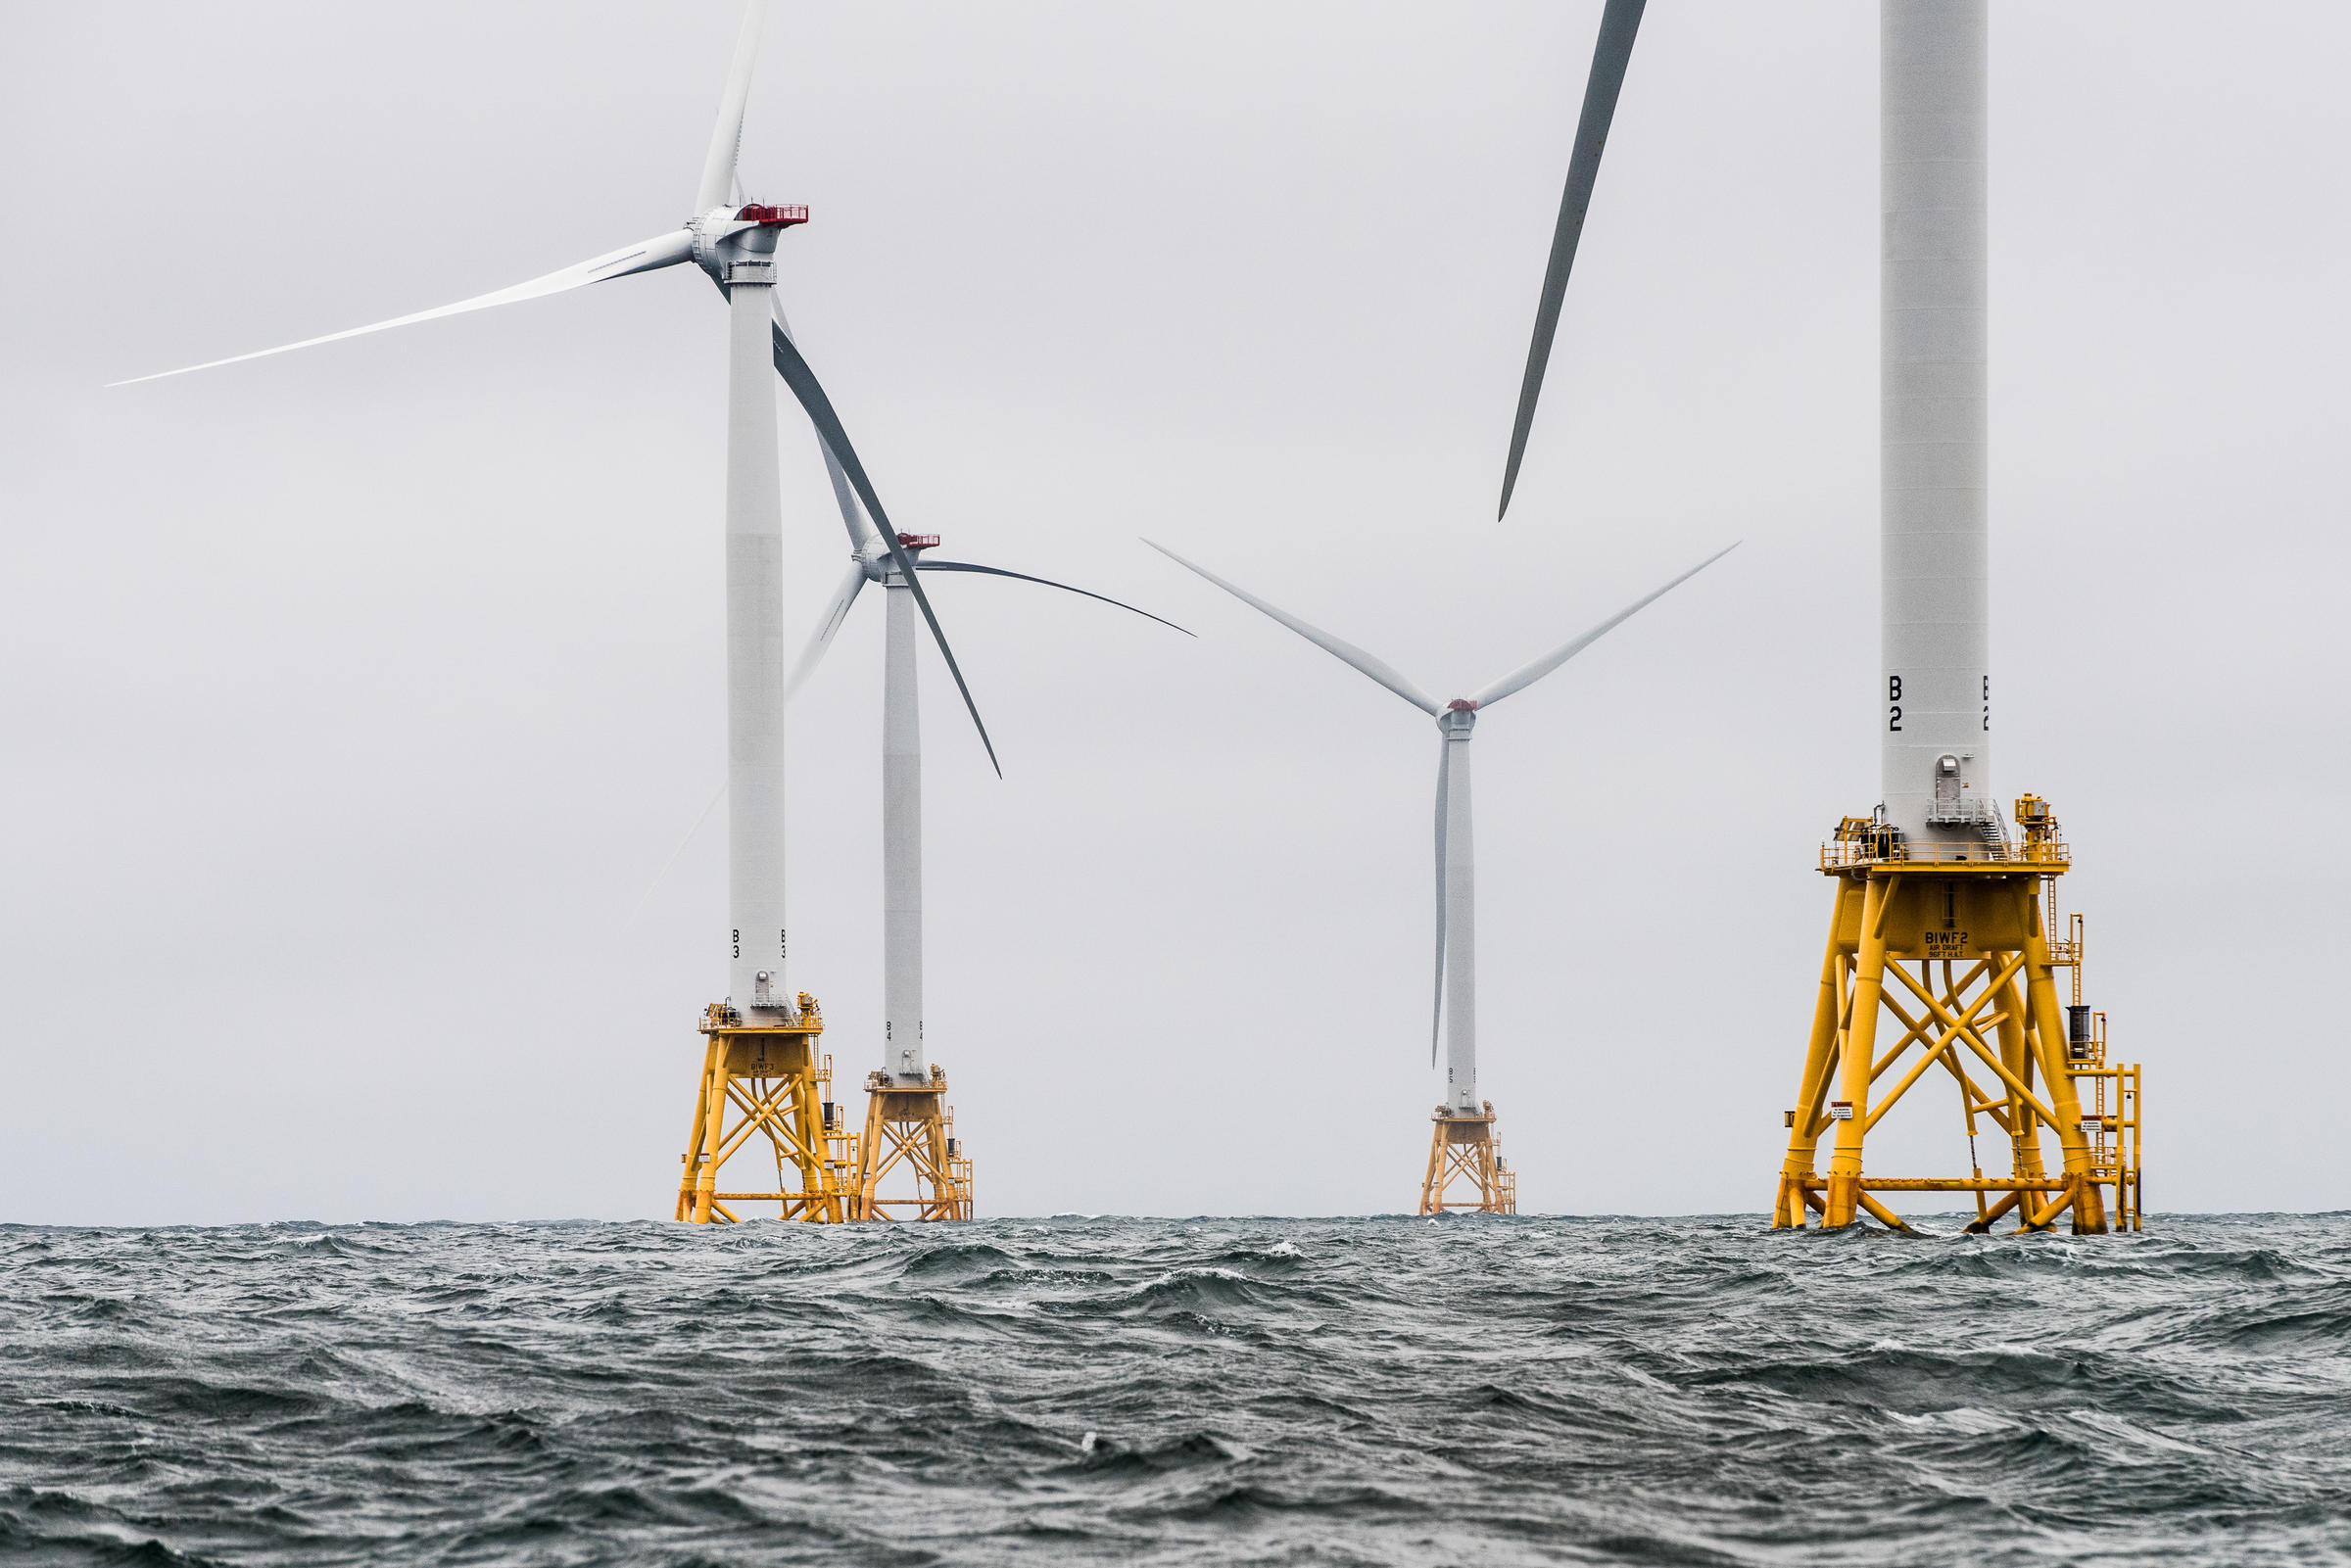 The Block Island Wind Farm off the coast of Rhode Island. Photo by Dennis Schroeder for NREL